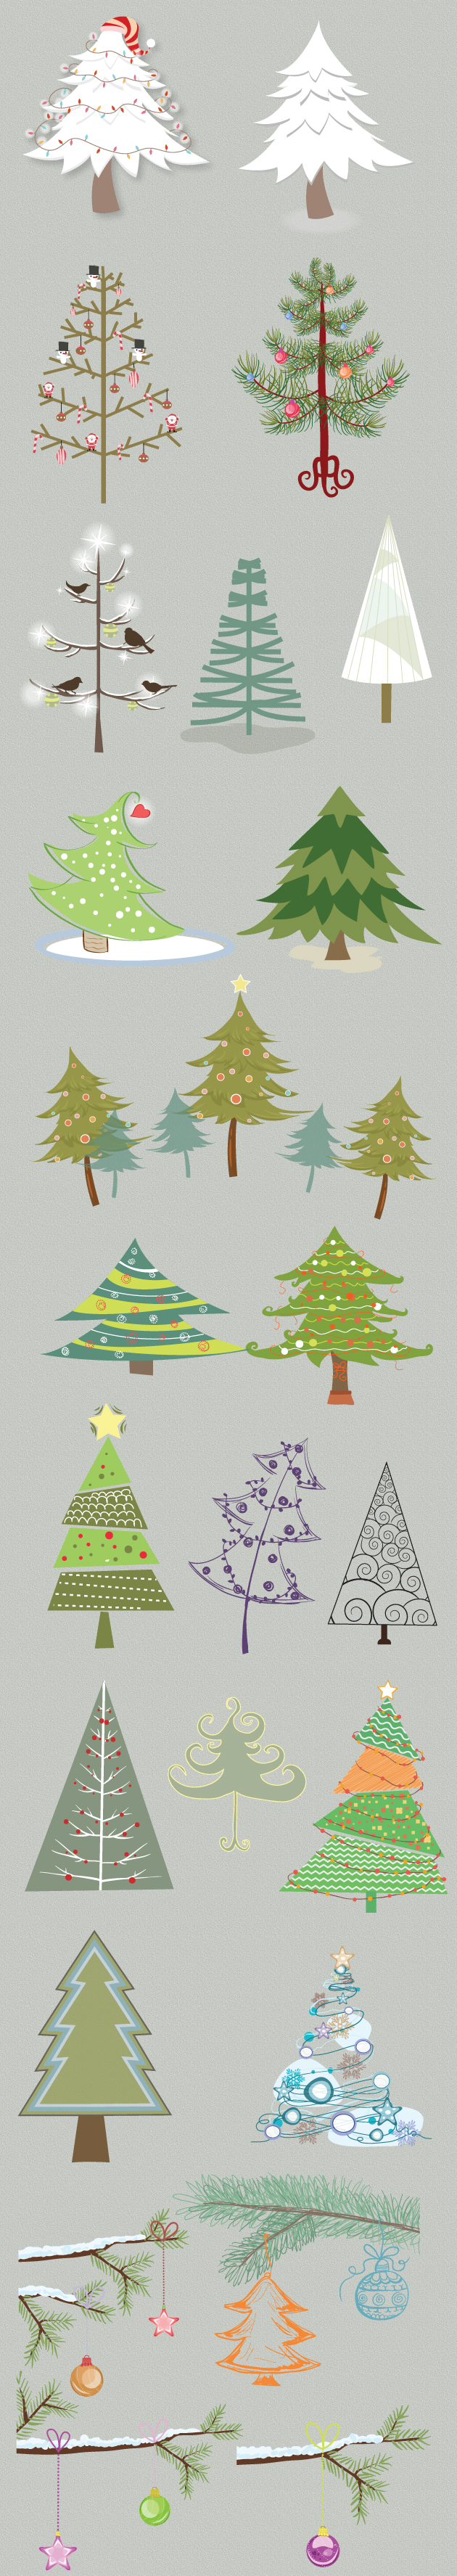 Christmas Vector Trees designtnt christmas vector trees vector large